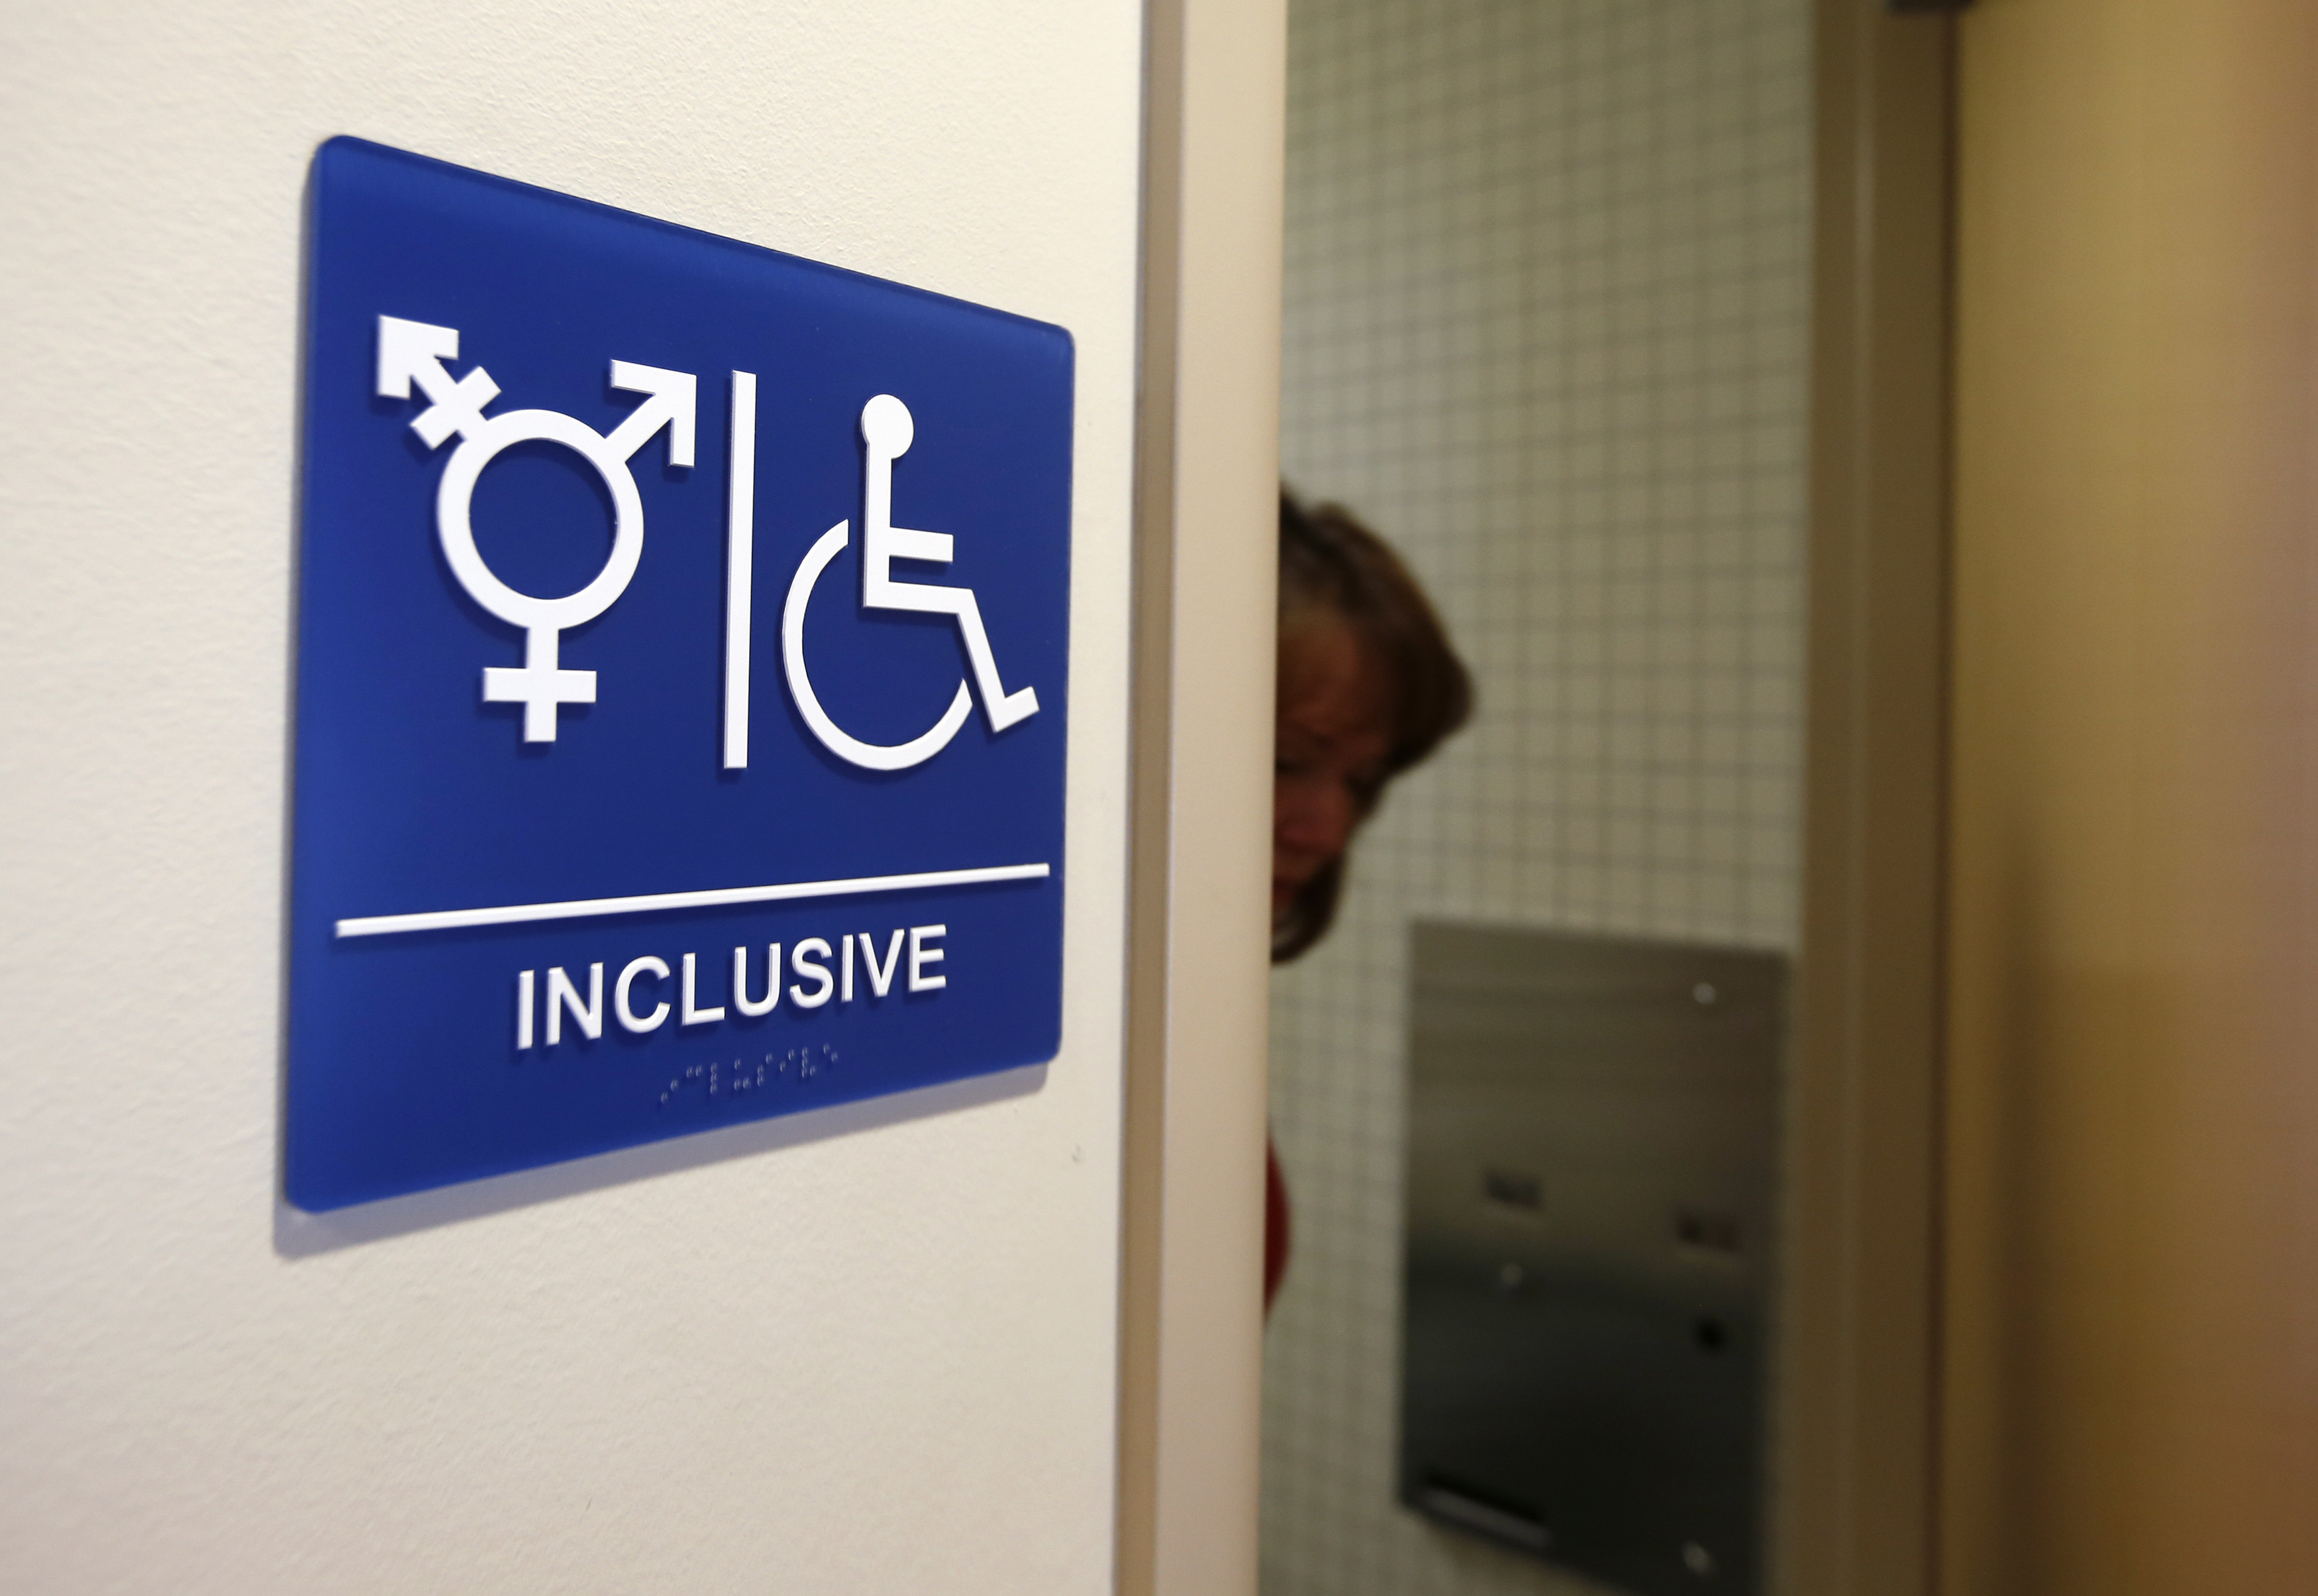 A gender-neutral bathroom is seen at the University of California, Irvine in Irvine, California September 30, 2014. The University of California will designate gender-neutral restrooms at its 10 campuses to accommodate transgender students, in a move that may be the first of its kind for a system of colleges in the United States.  REUTERS/Lucy Nicholson (UNITED STATES - Tags: EDUCATION SOCIETY POLITICS) - RTR48EXX